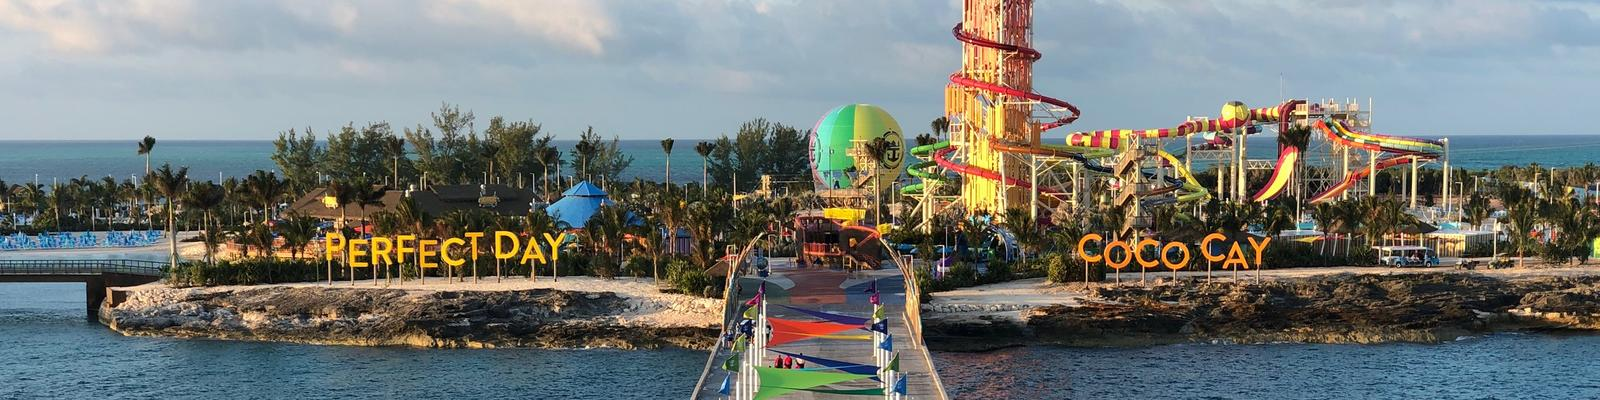 View of CocoCay at sunset from Royal Caribbean ship